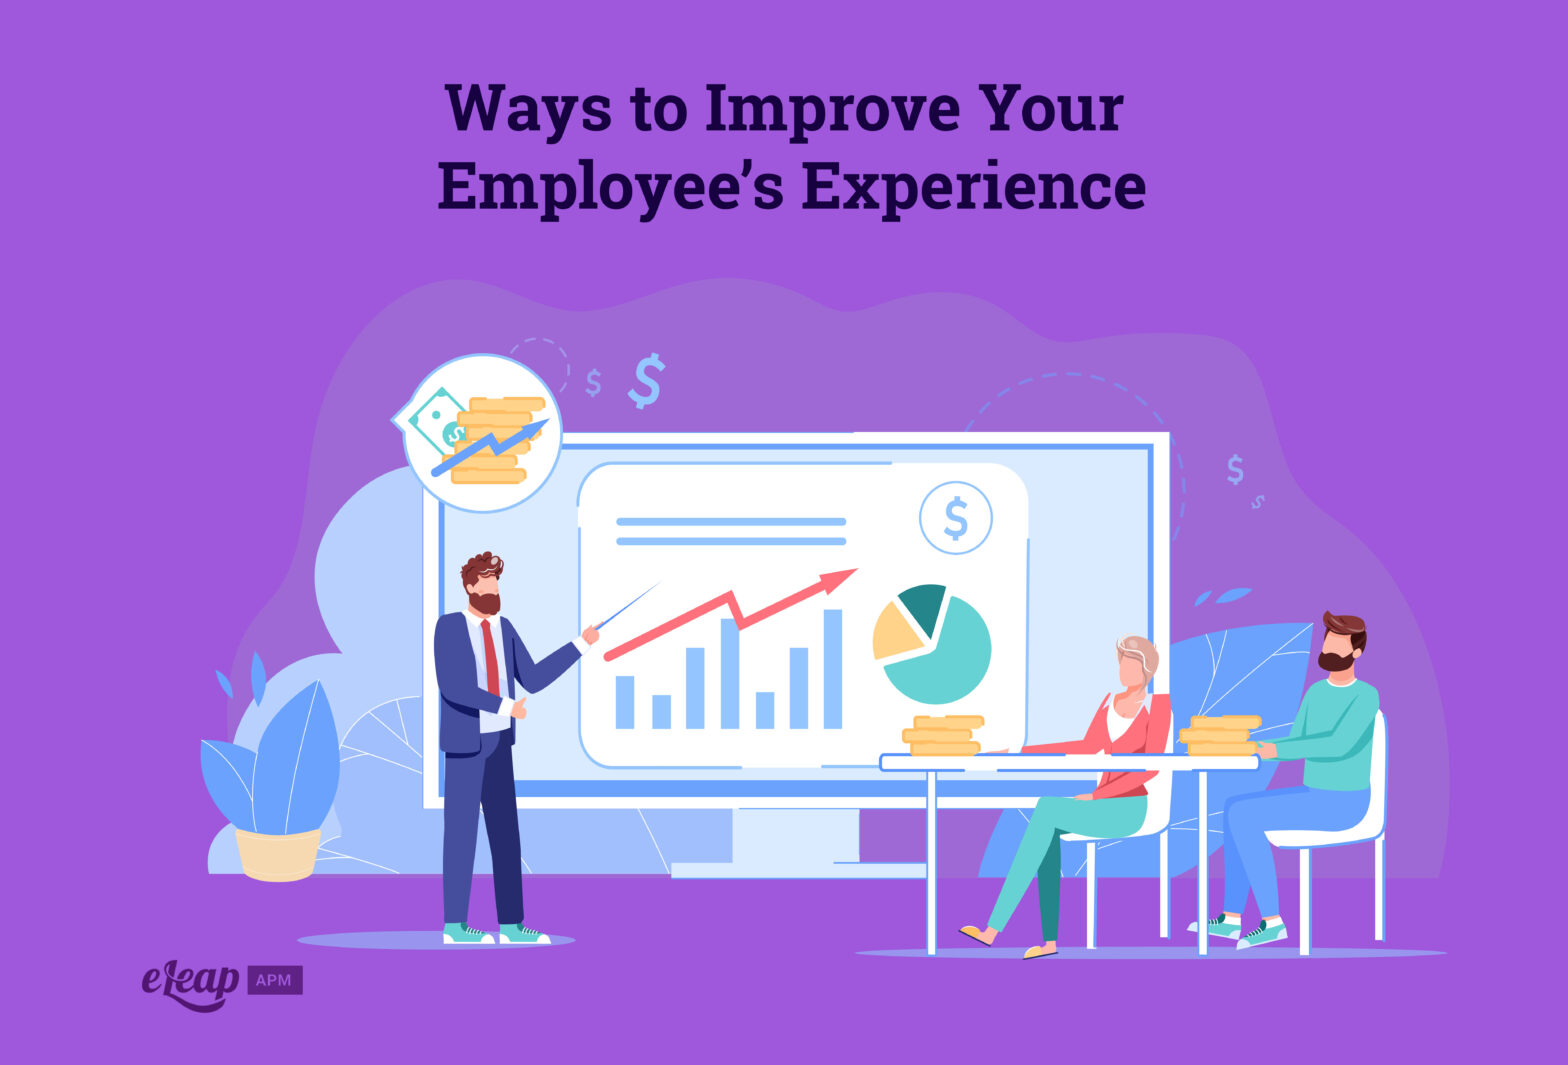 Ways to Improve Your Employee's Experience